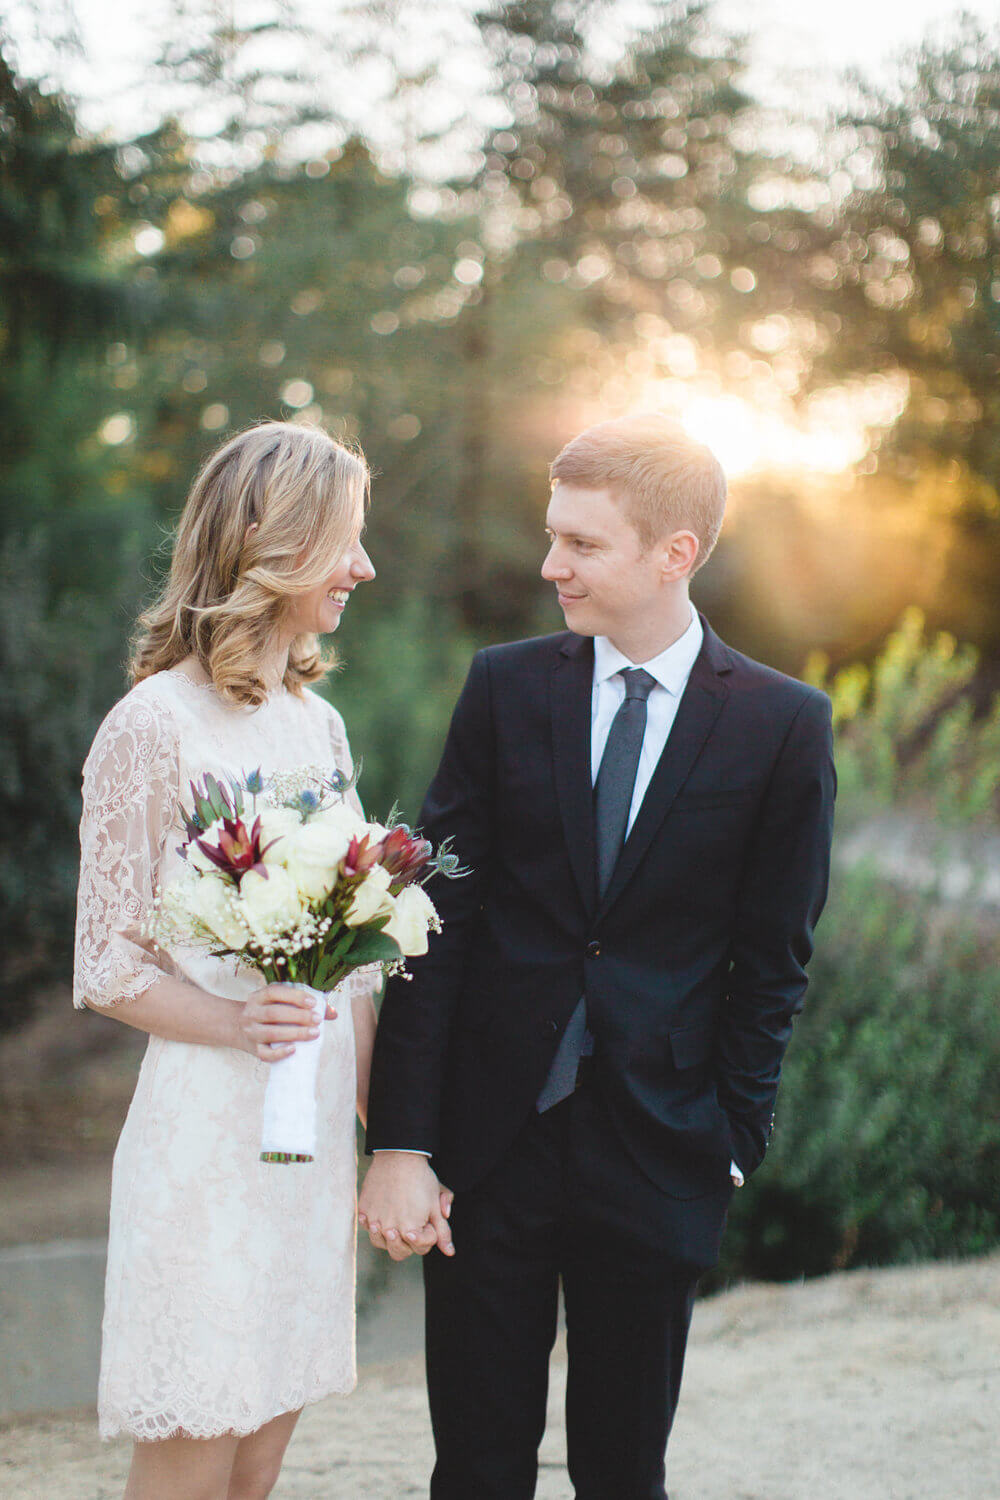 the-light-and-glass-wedding-engagement-photography-20151218-012.jpeg